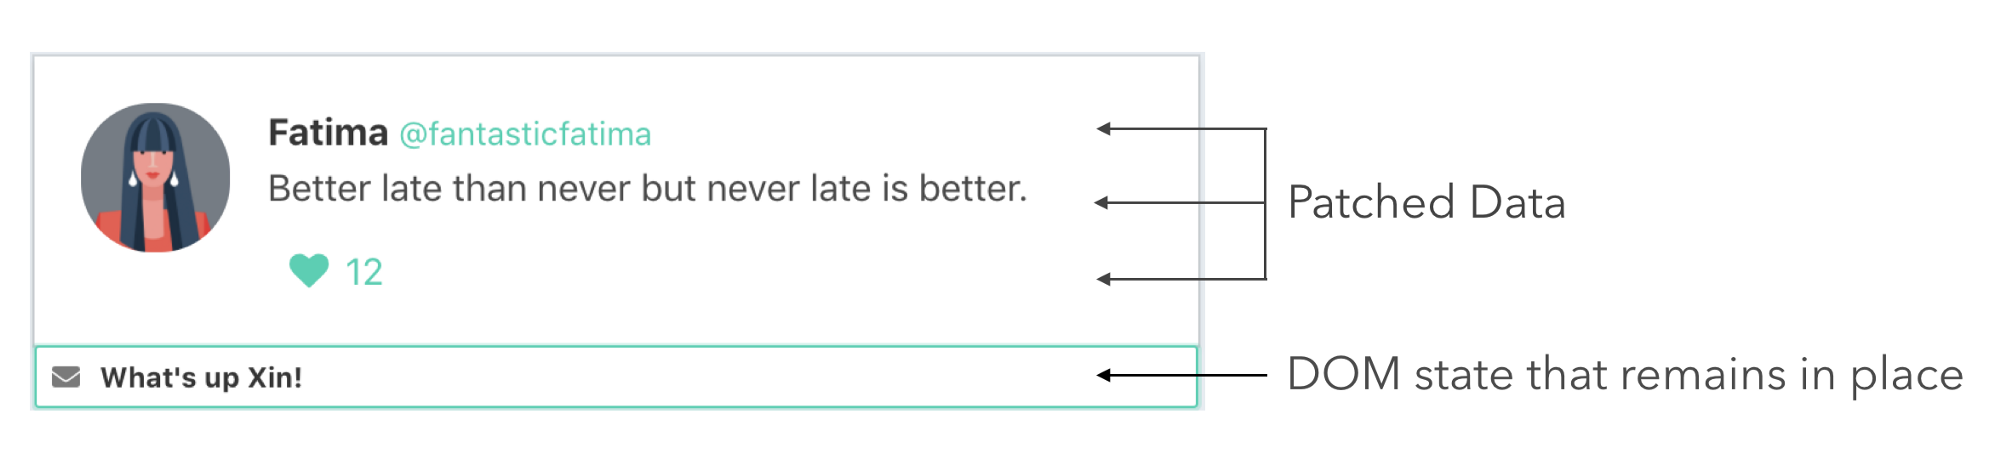 An Introduction To Dynamic List Rendering In Vuejs The Little Ones Due Date Using Diagram Heres A That Shows Us Data Gets Patched On Each Element And Dom State Remains Place